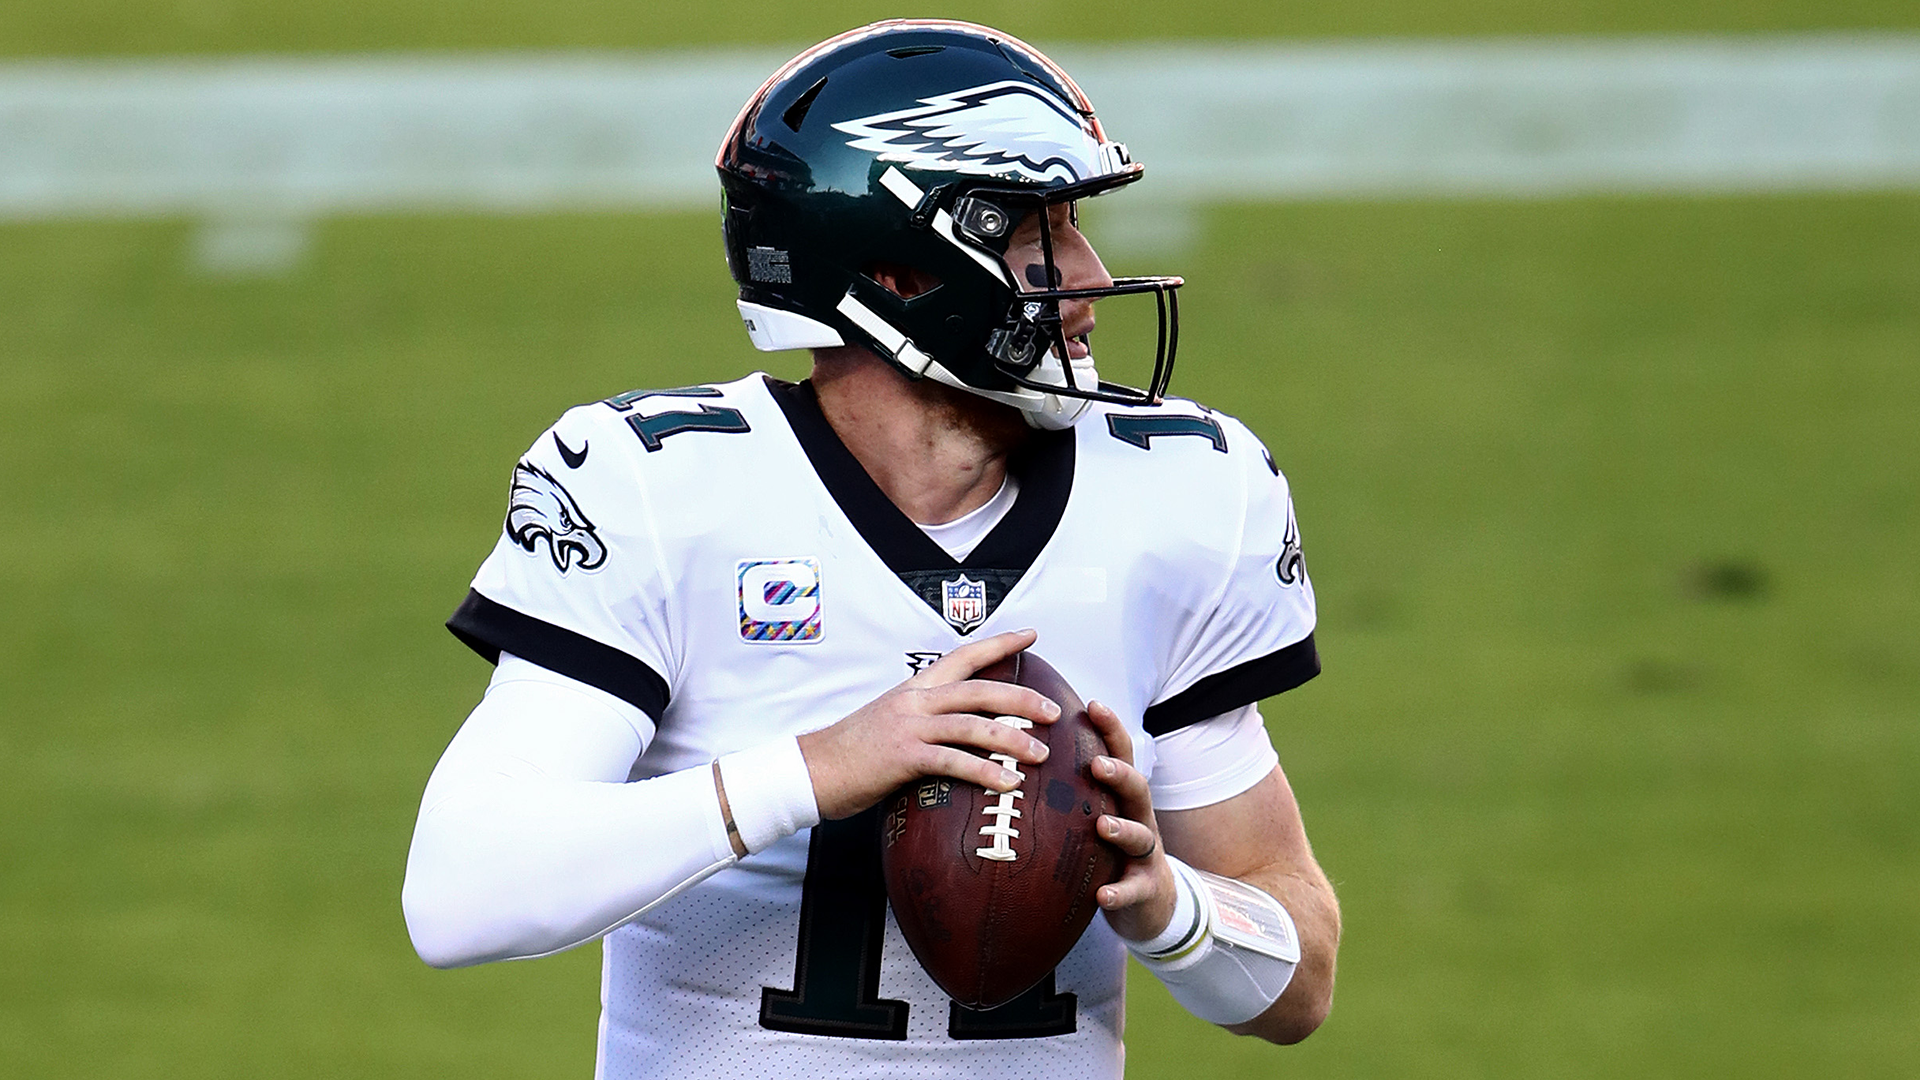 Carson Wentz trade grades: Colts secure needed starting QB with upside; Eagles settle for limited return